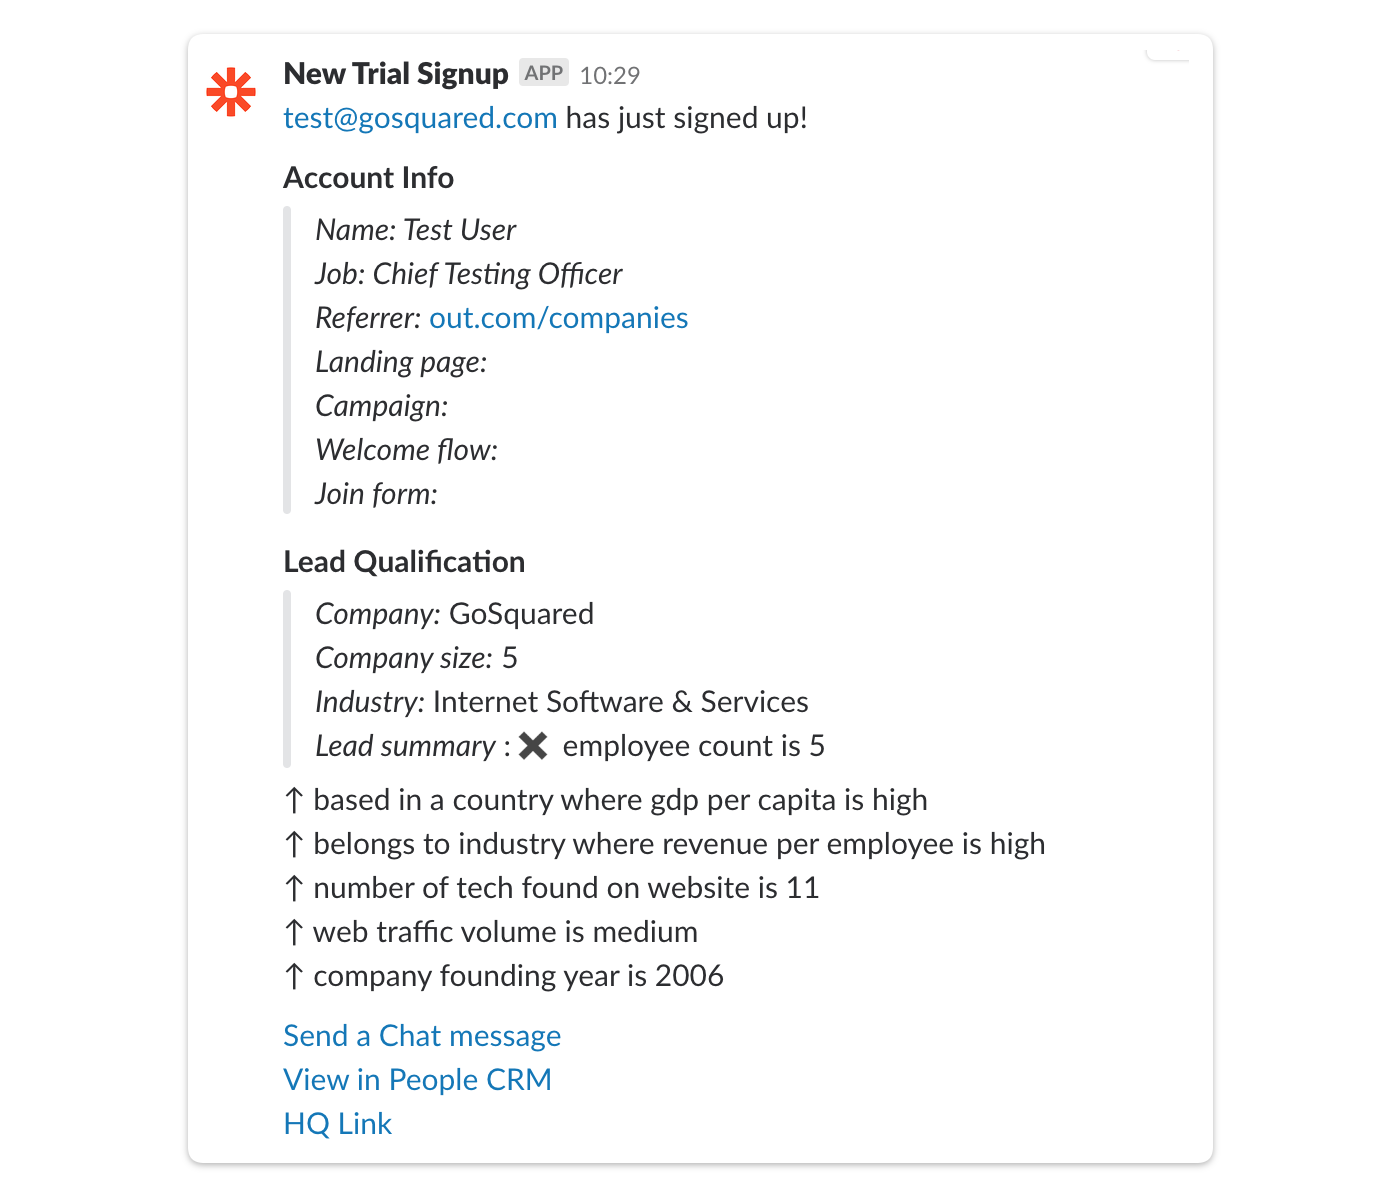 new trial signup slack integration